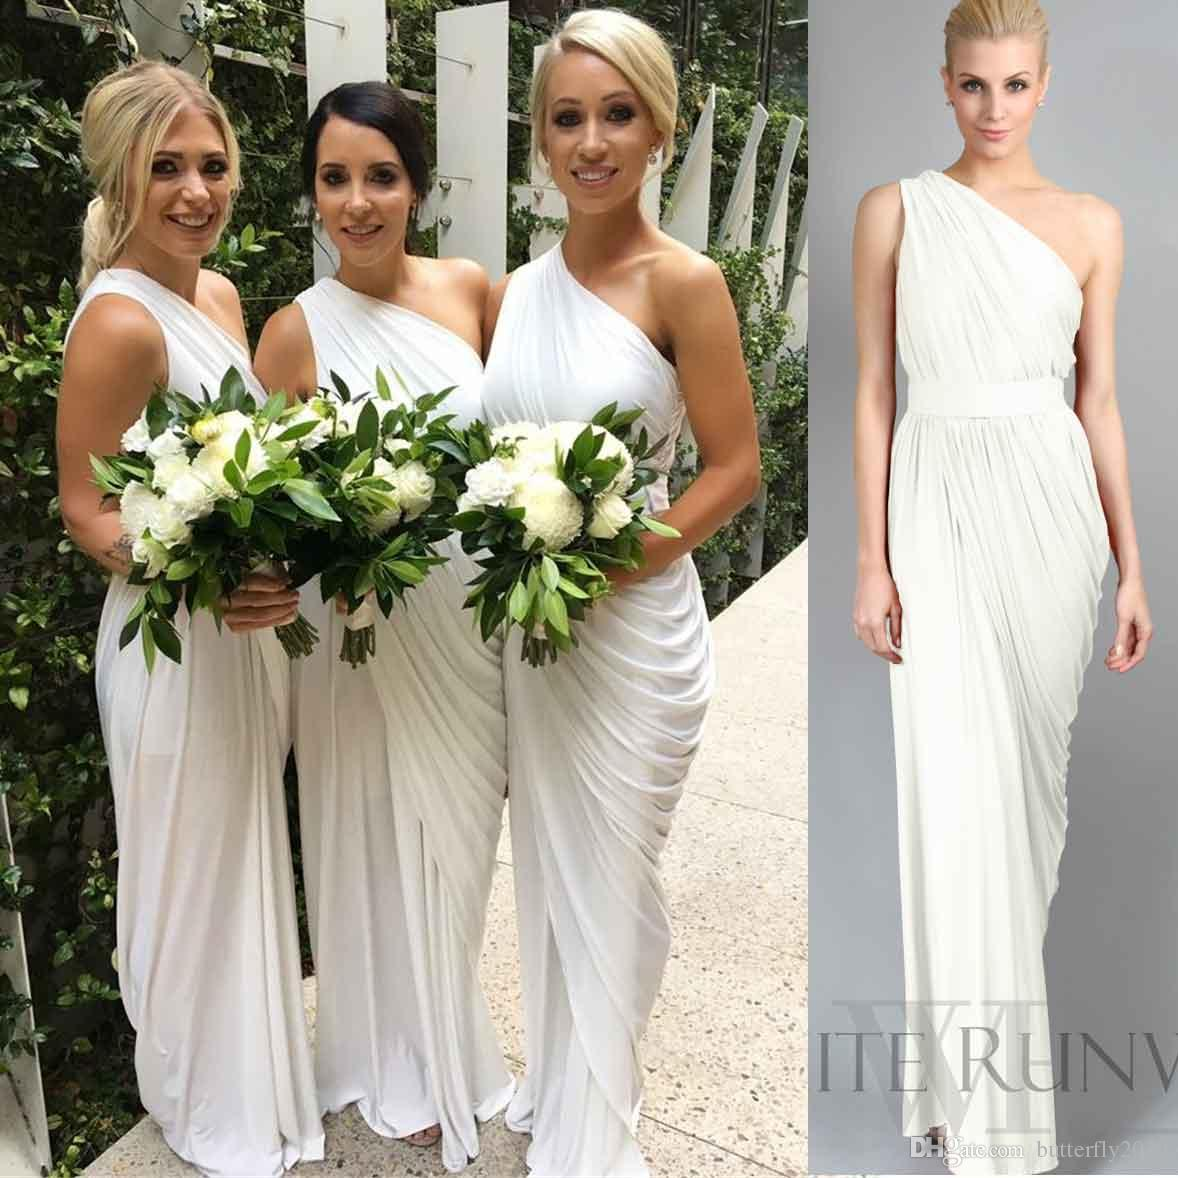 Ivory chiffon one shoulder beach bridesmaid dresses long pleated ivory chiffon one shoulder beach bridesmaid dresses long pleated cheap bridesmaids gown plus size maid of honor dress fast shipping patterns for bridesmaid ombrellifo Images